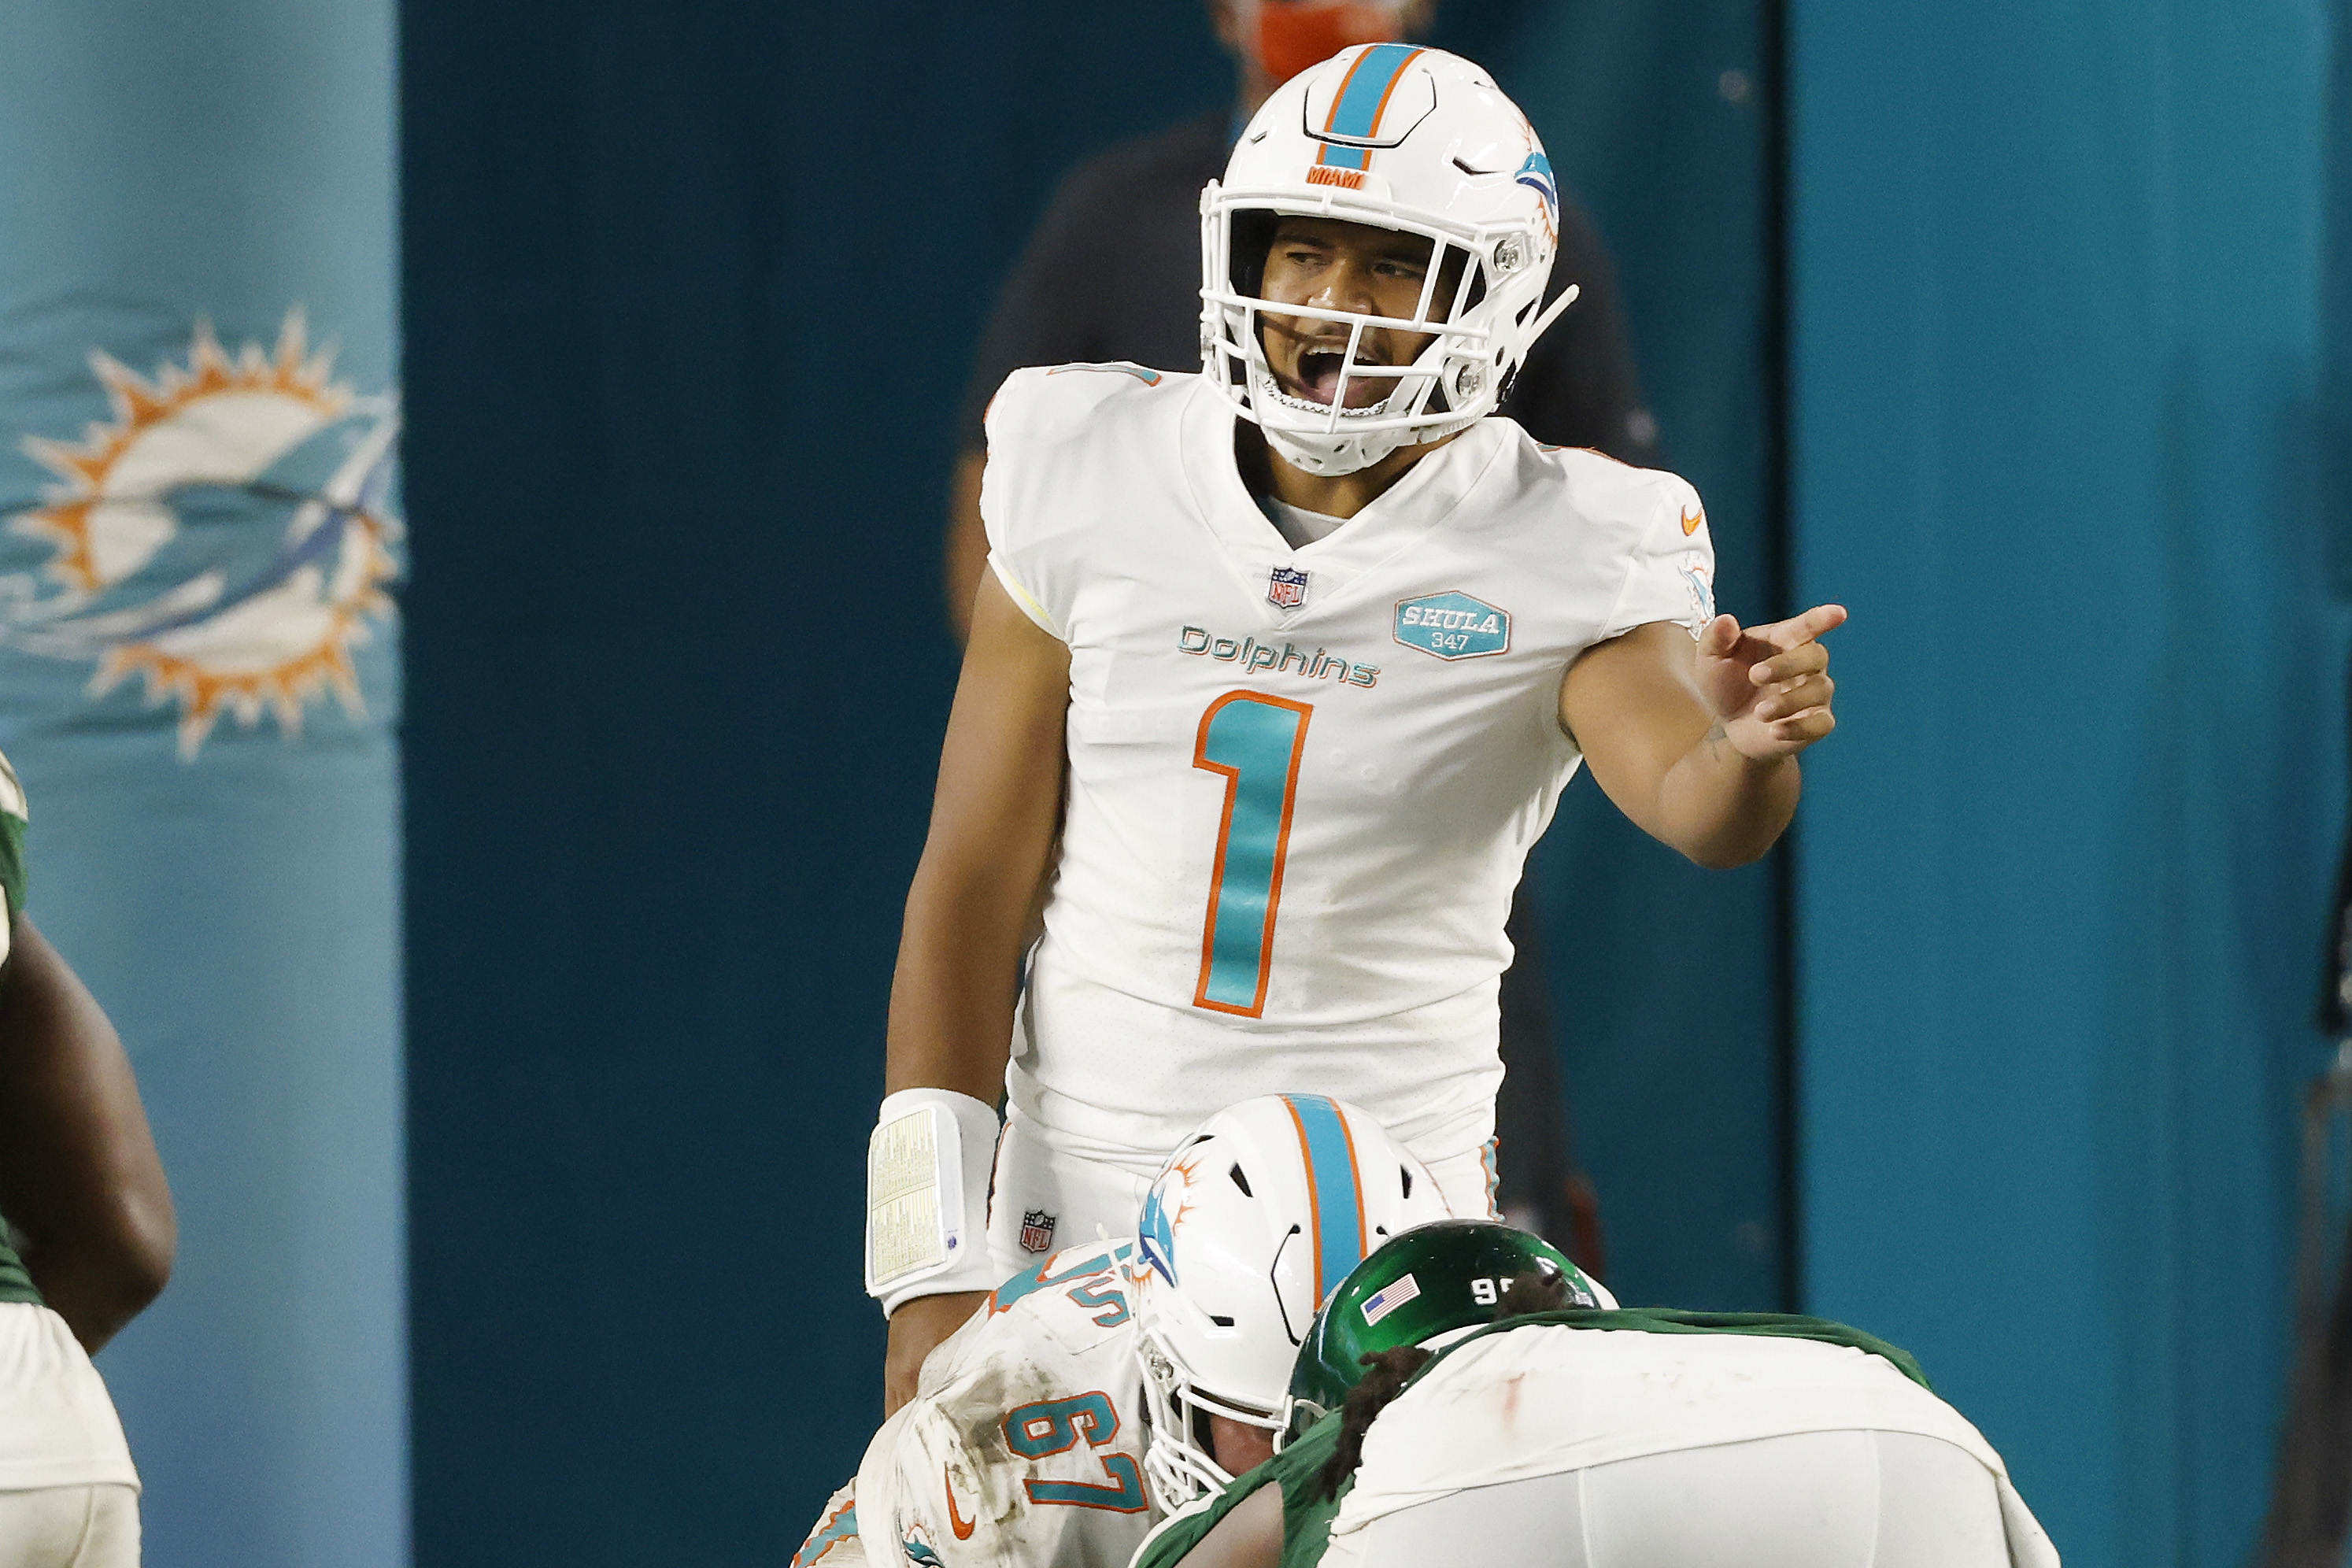 Miami Dolphins quarterback Tua Tagovailoa's full name is Tuanigamanuolepola Tagovailoa. What does the rookie's name mean in Hawaiian?